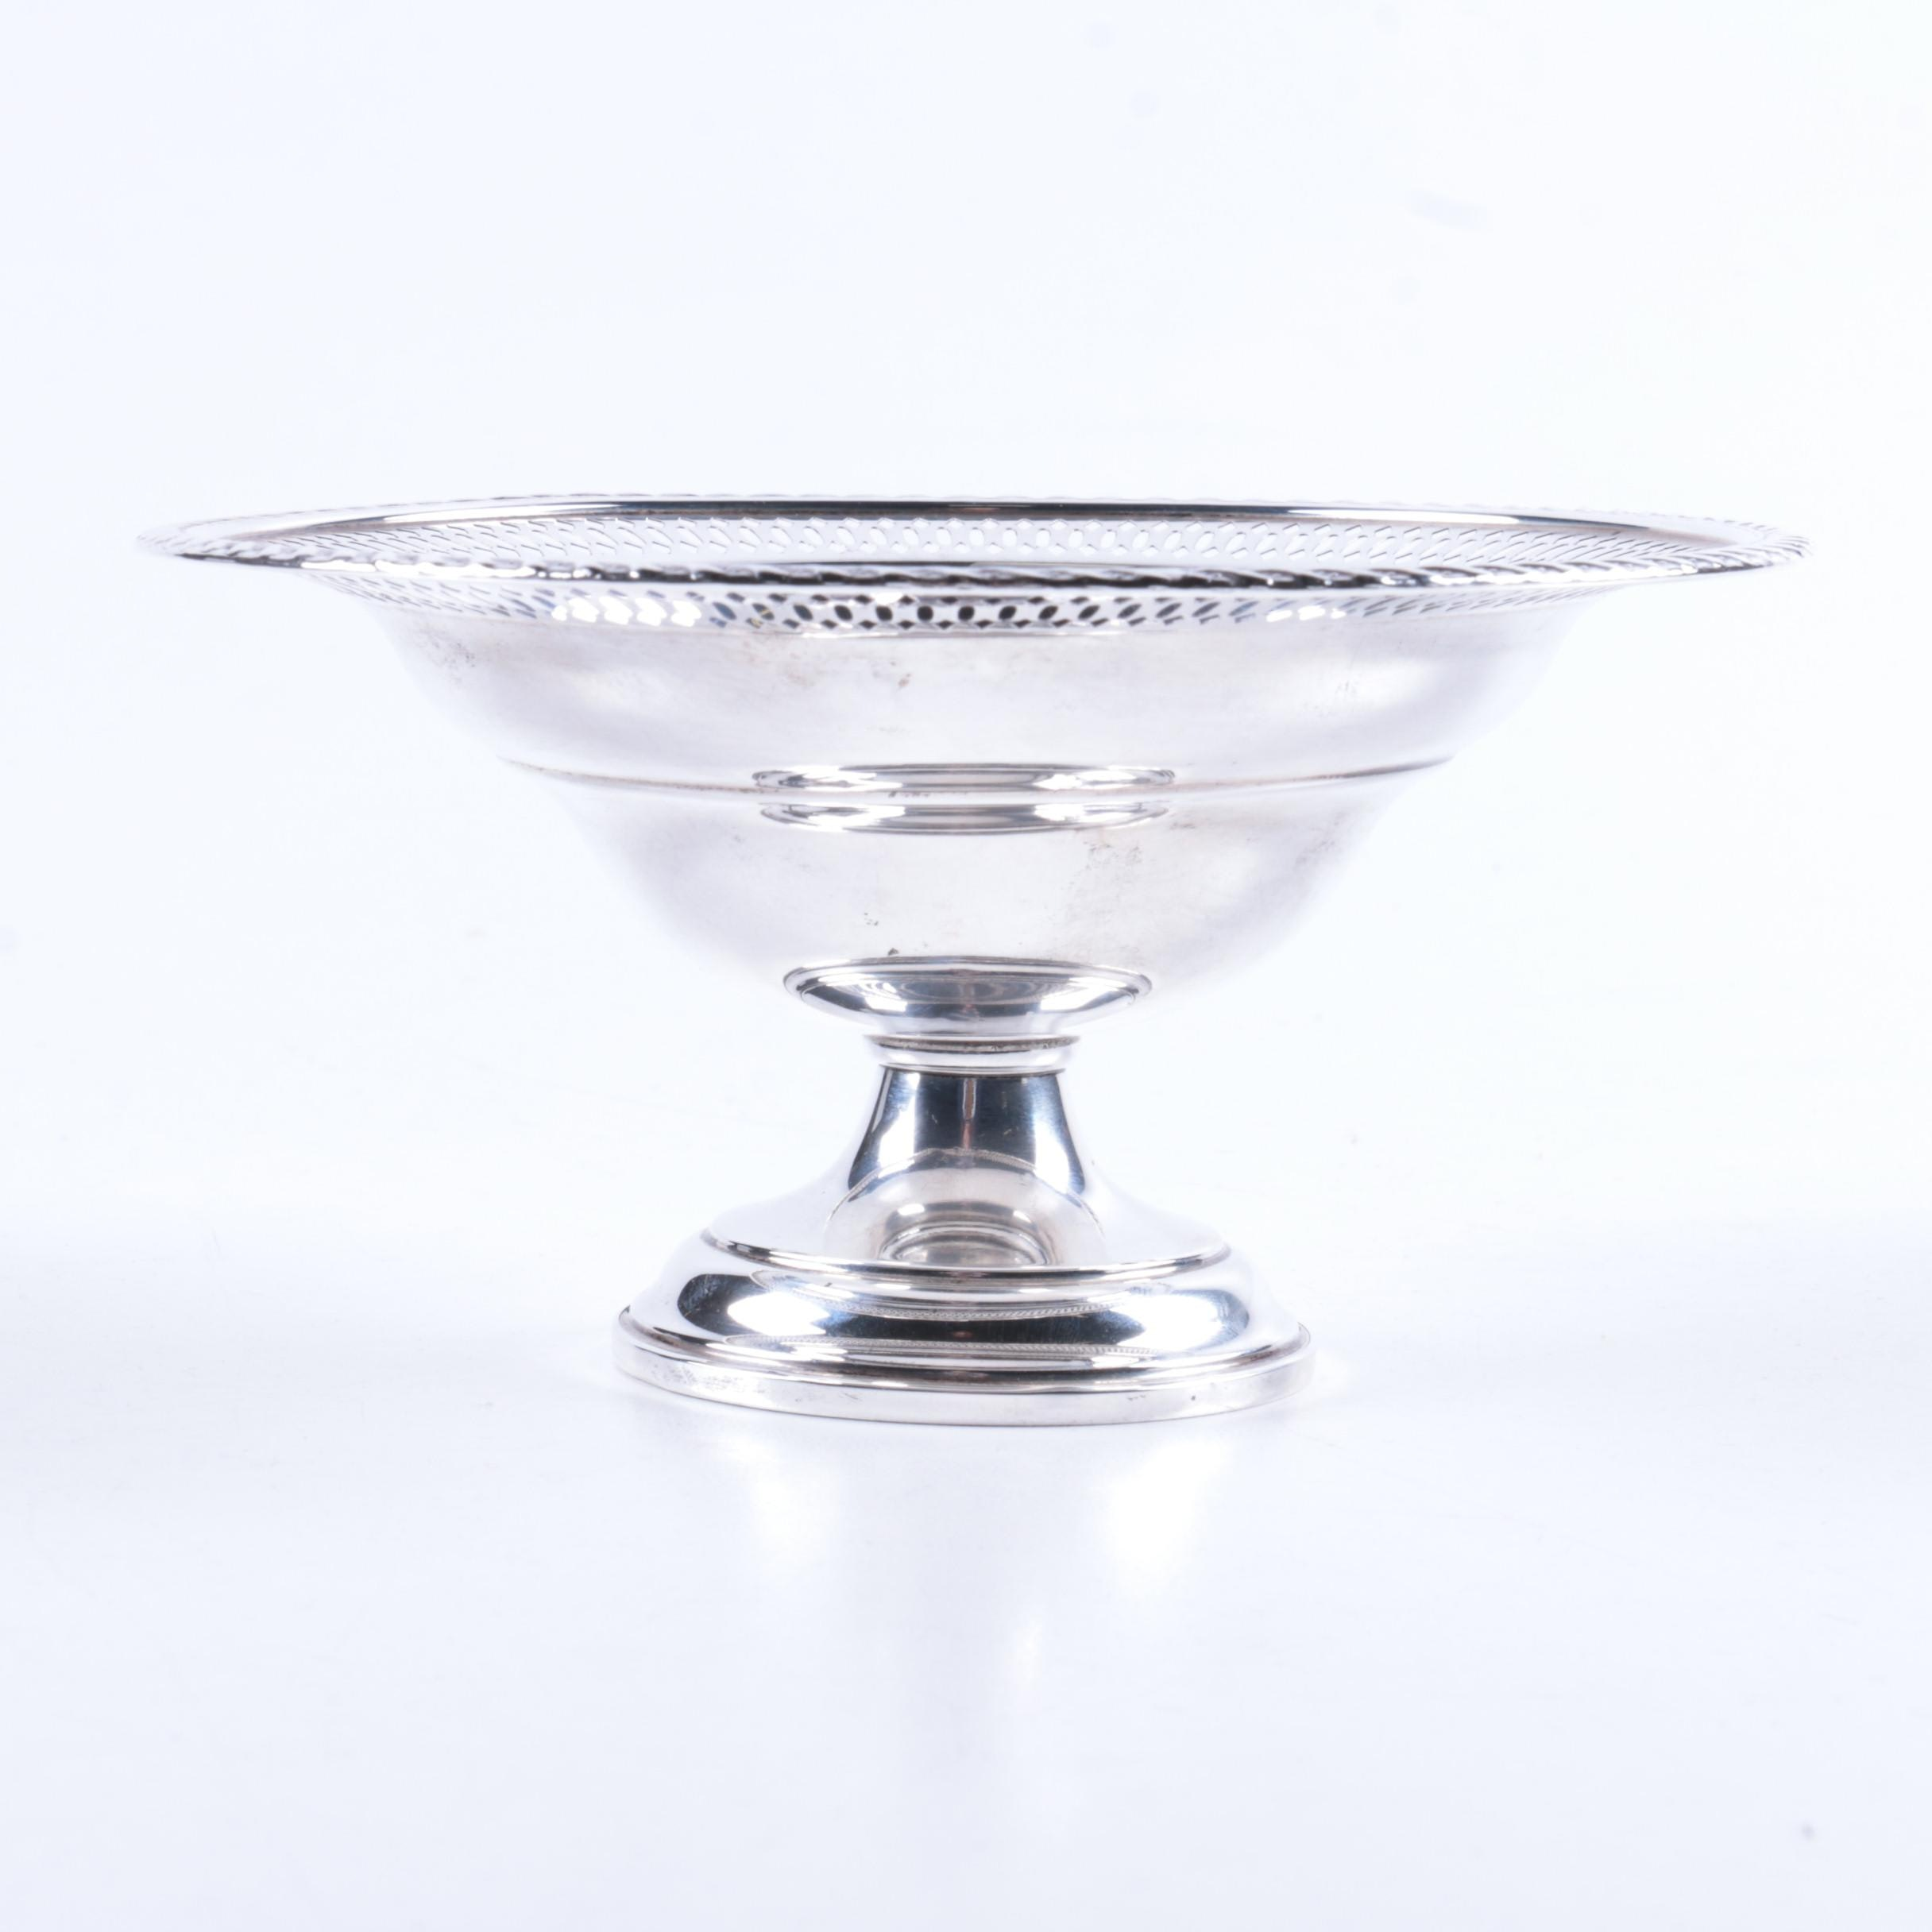 Preisner Silver Co. Short Weighted Sterling Silver Compote